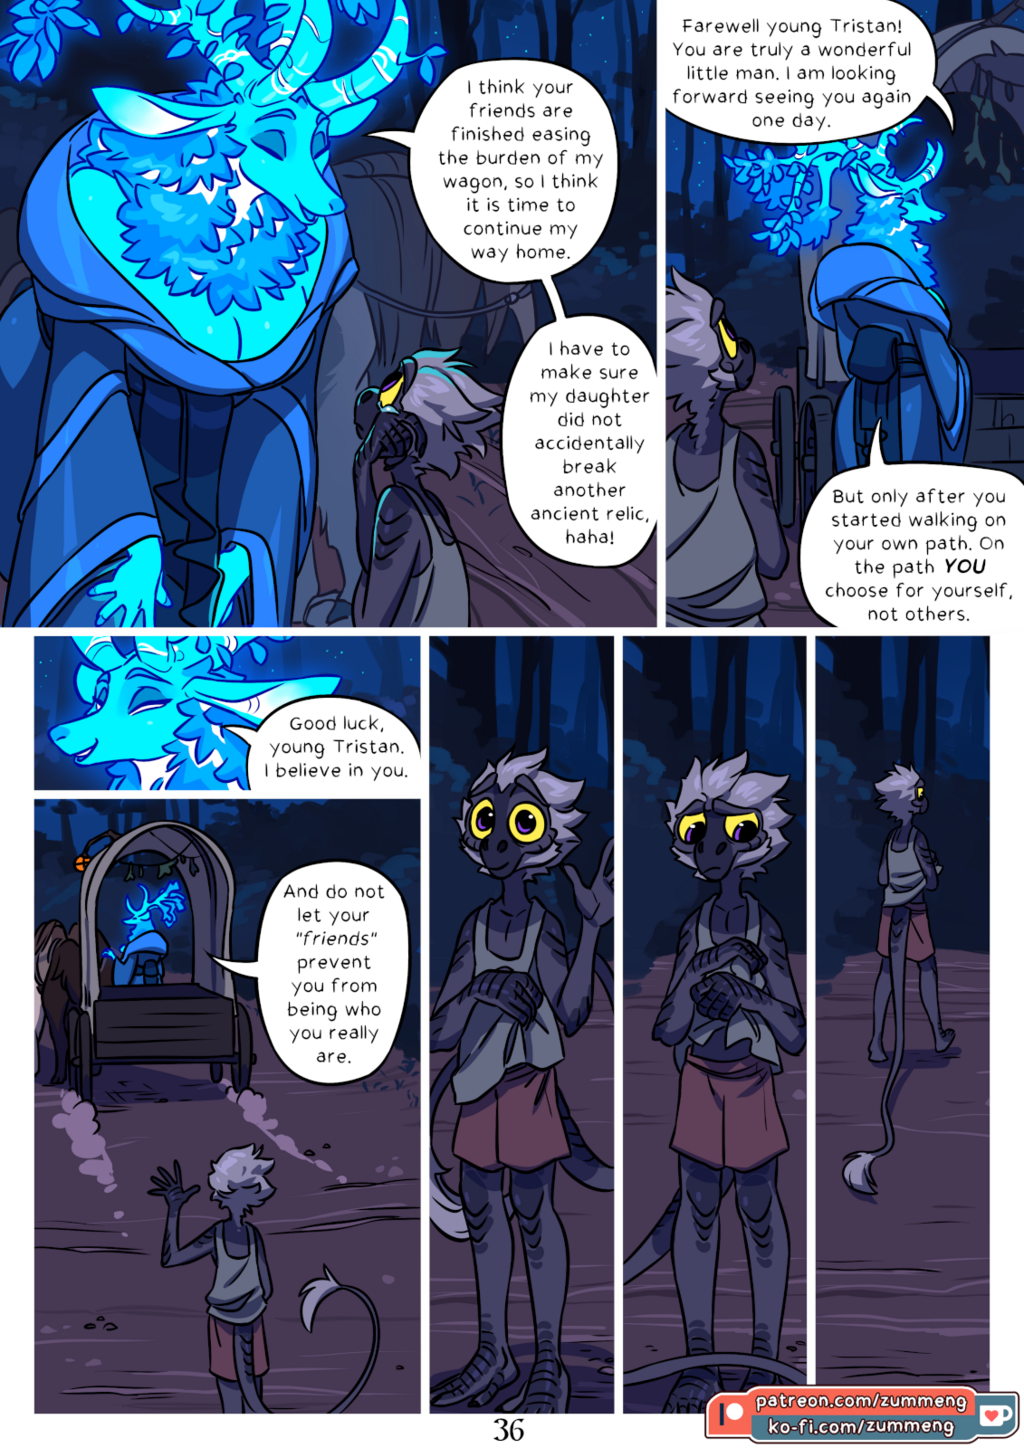 Tree of Life - Book 0 pg. 36.